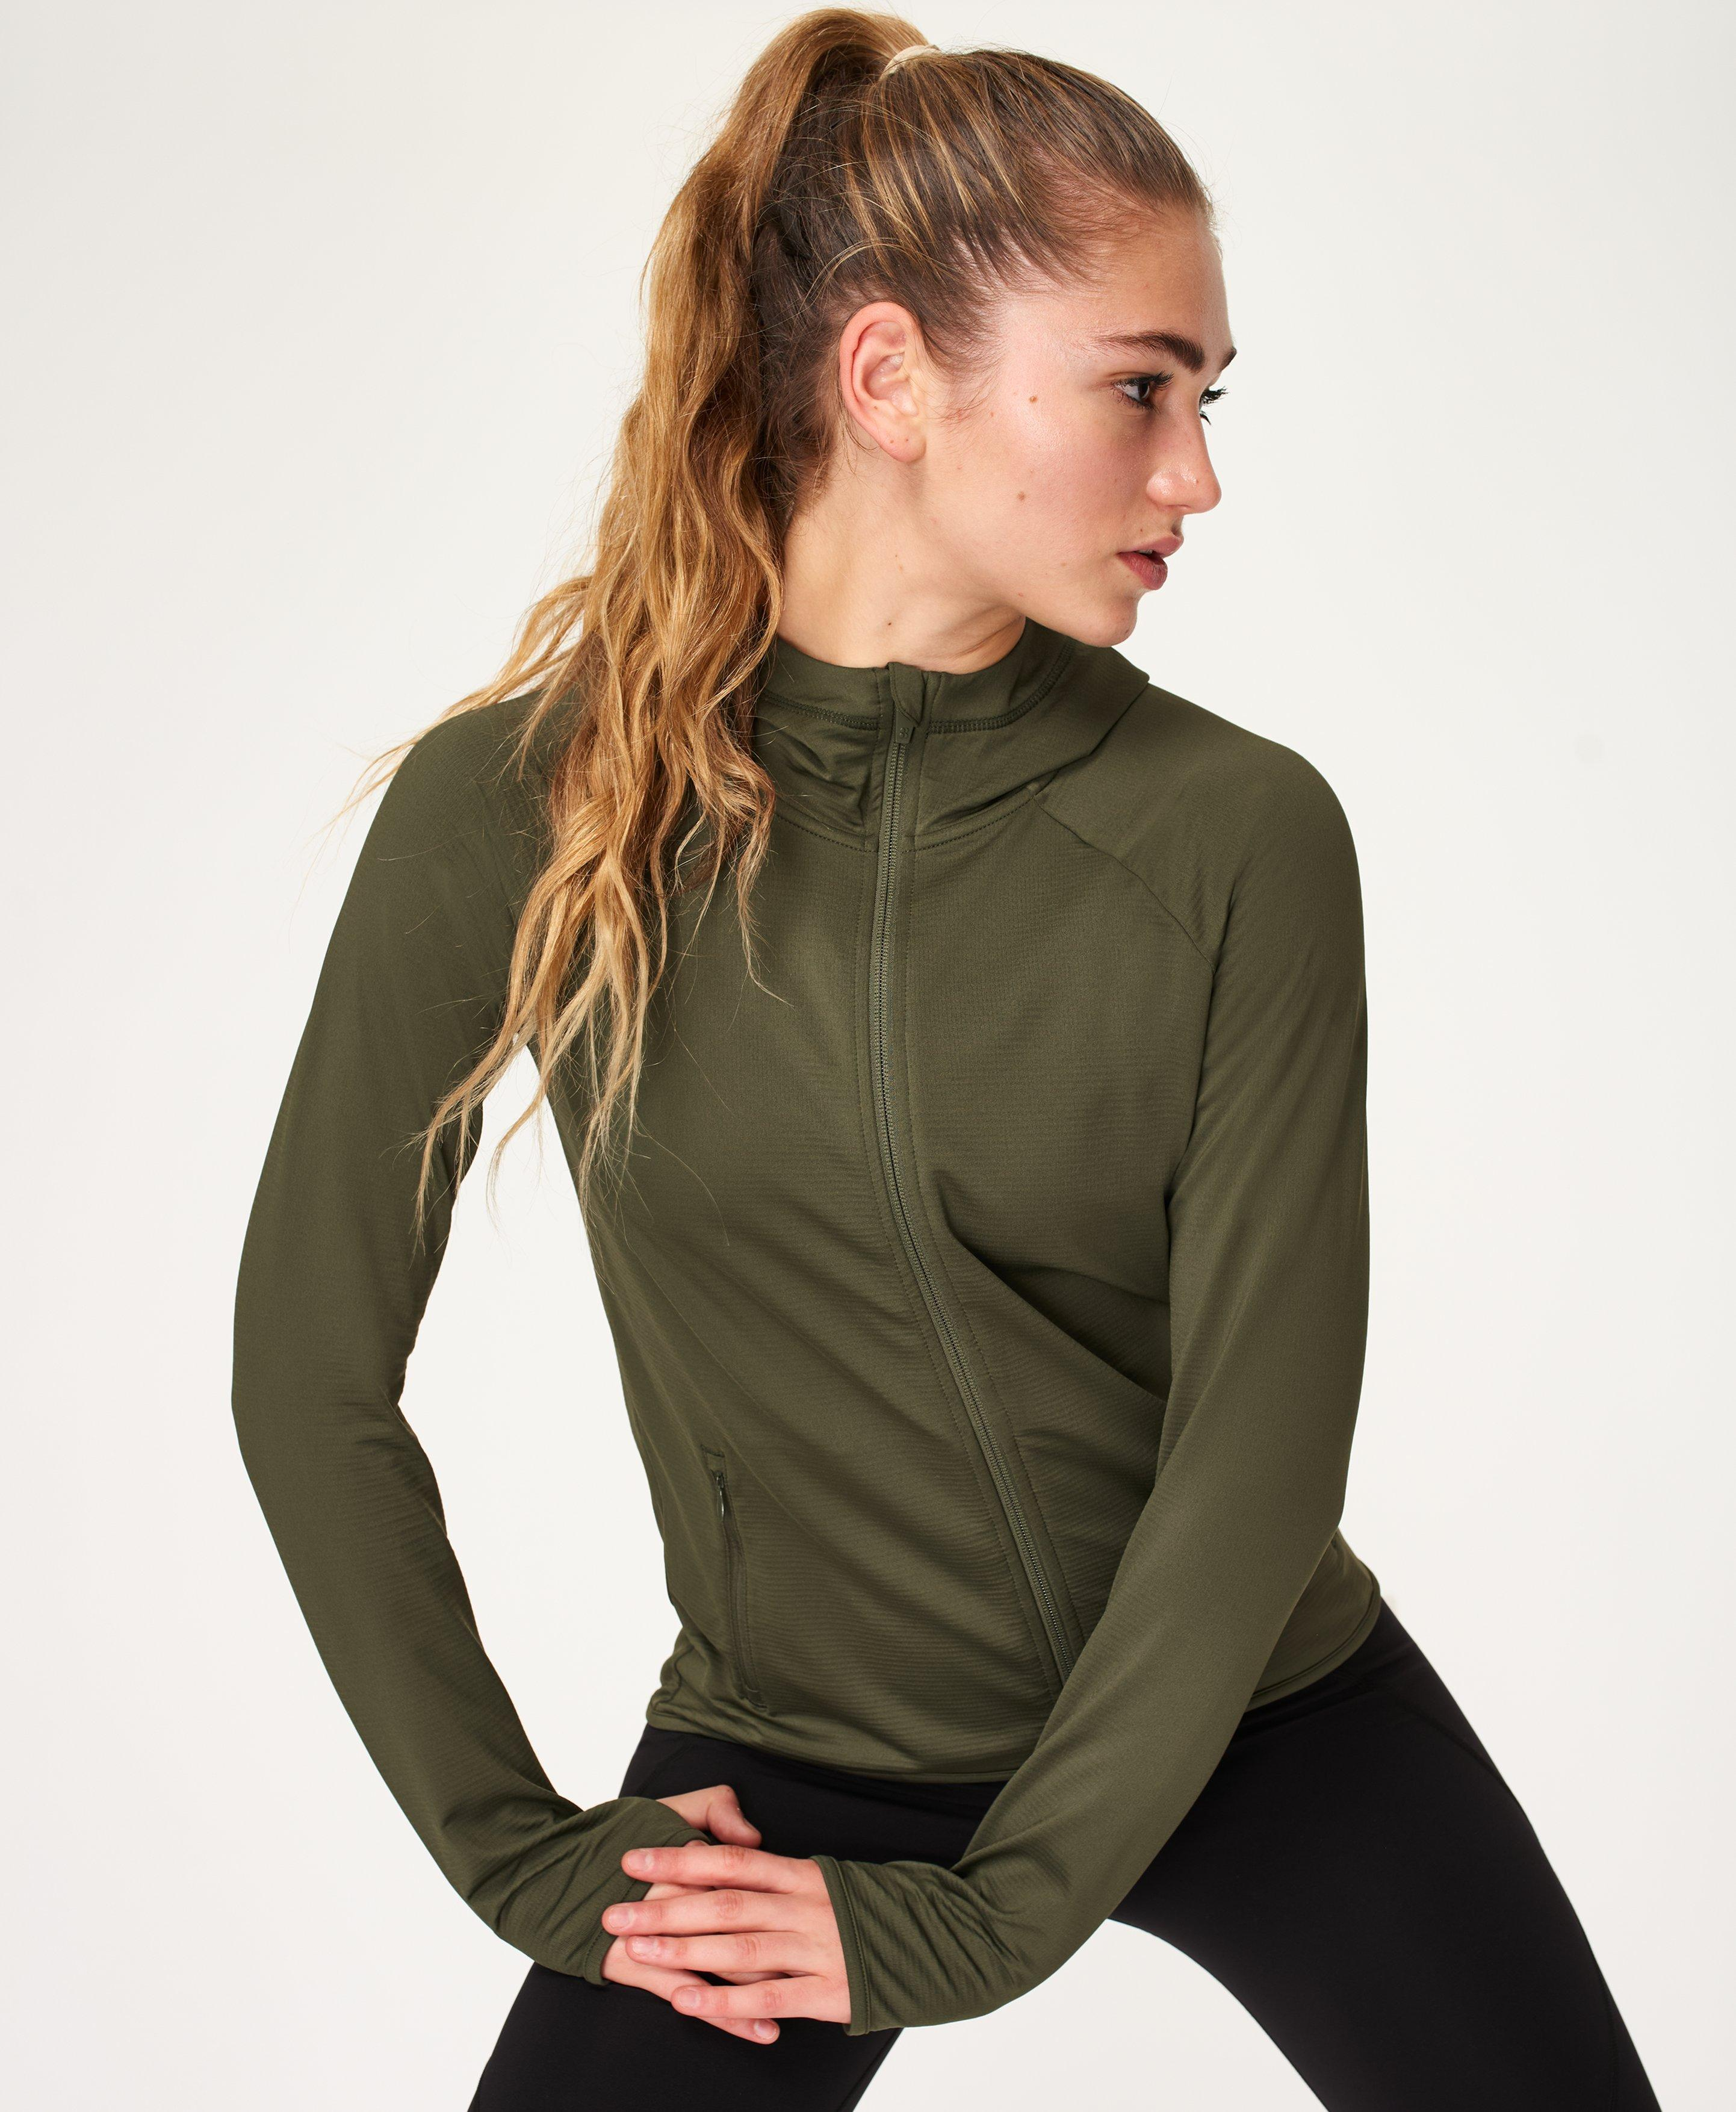 Designed by women for women, our goal is to make you feel powerful and amazing from studio to street with the best fit and fabric.